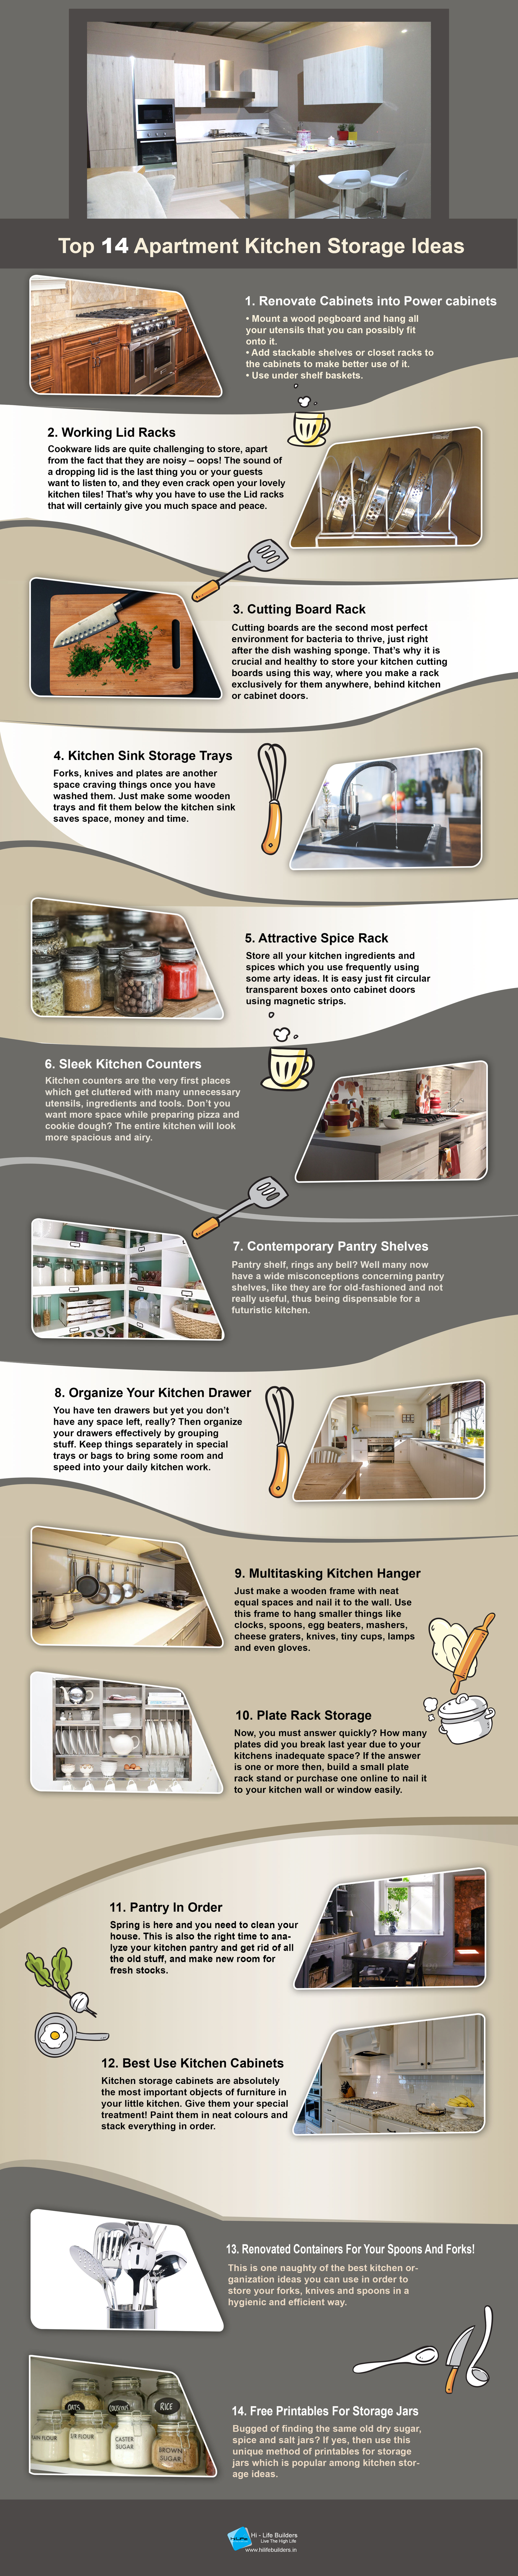 14 Top Small Apartment Kitchen Storage Ideas Infographics